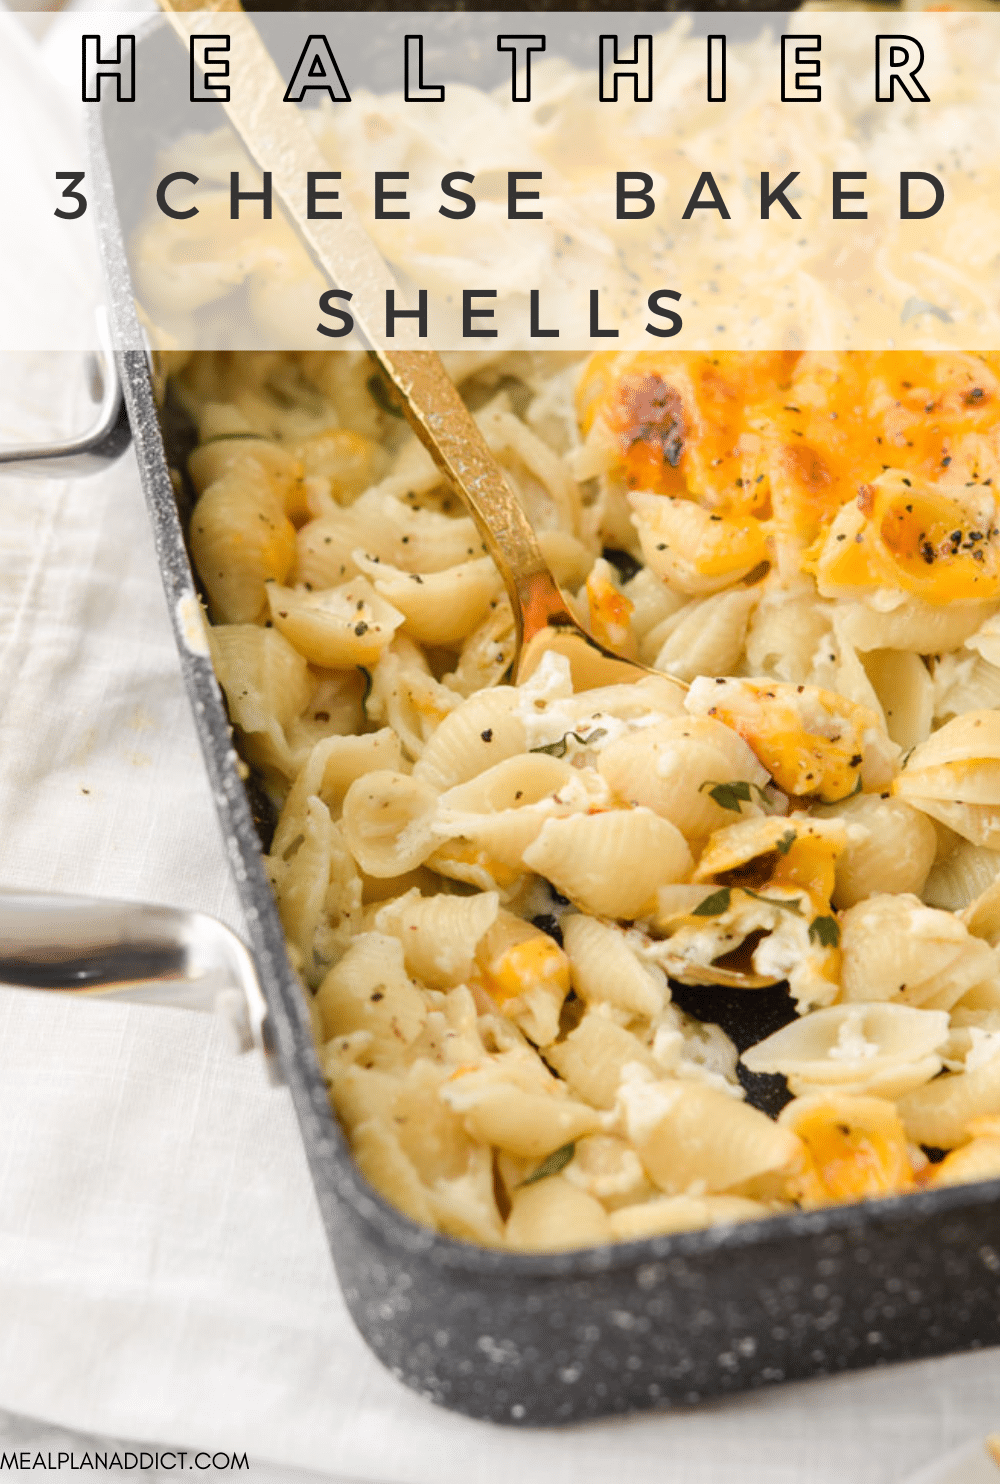 3 cheese baked shells pin for Pinterest